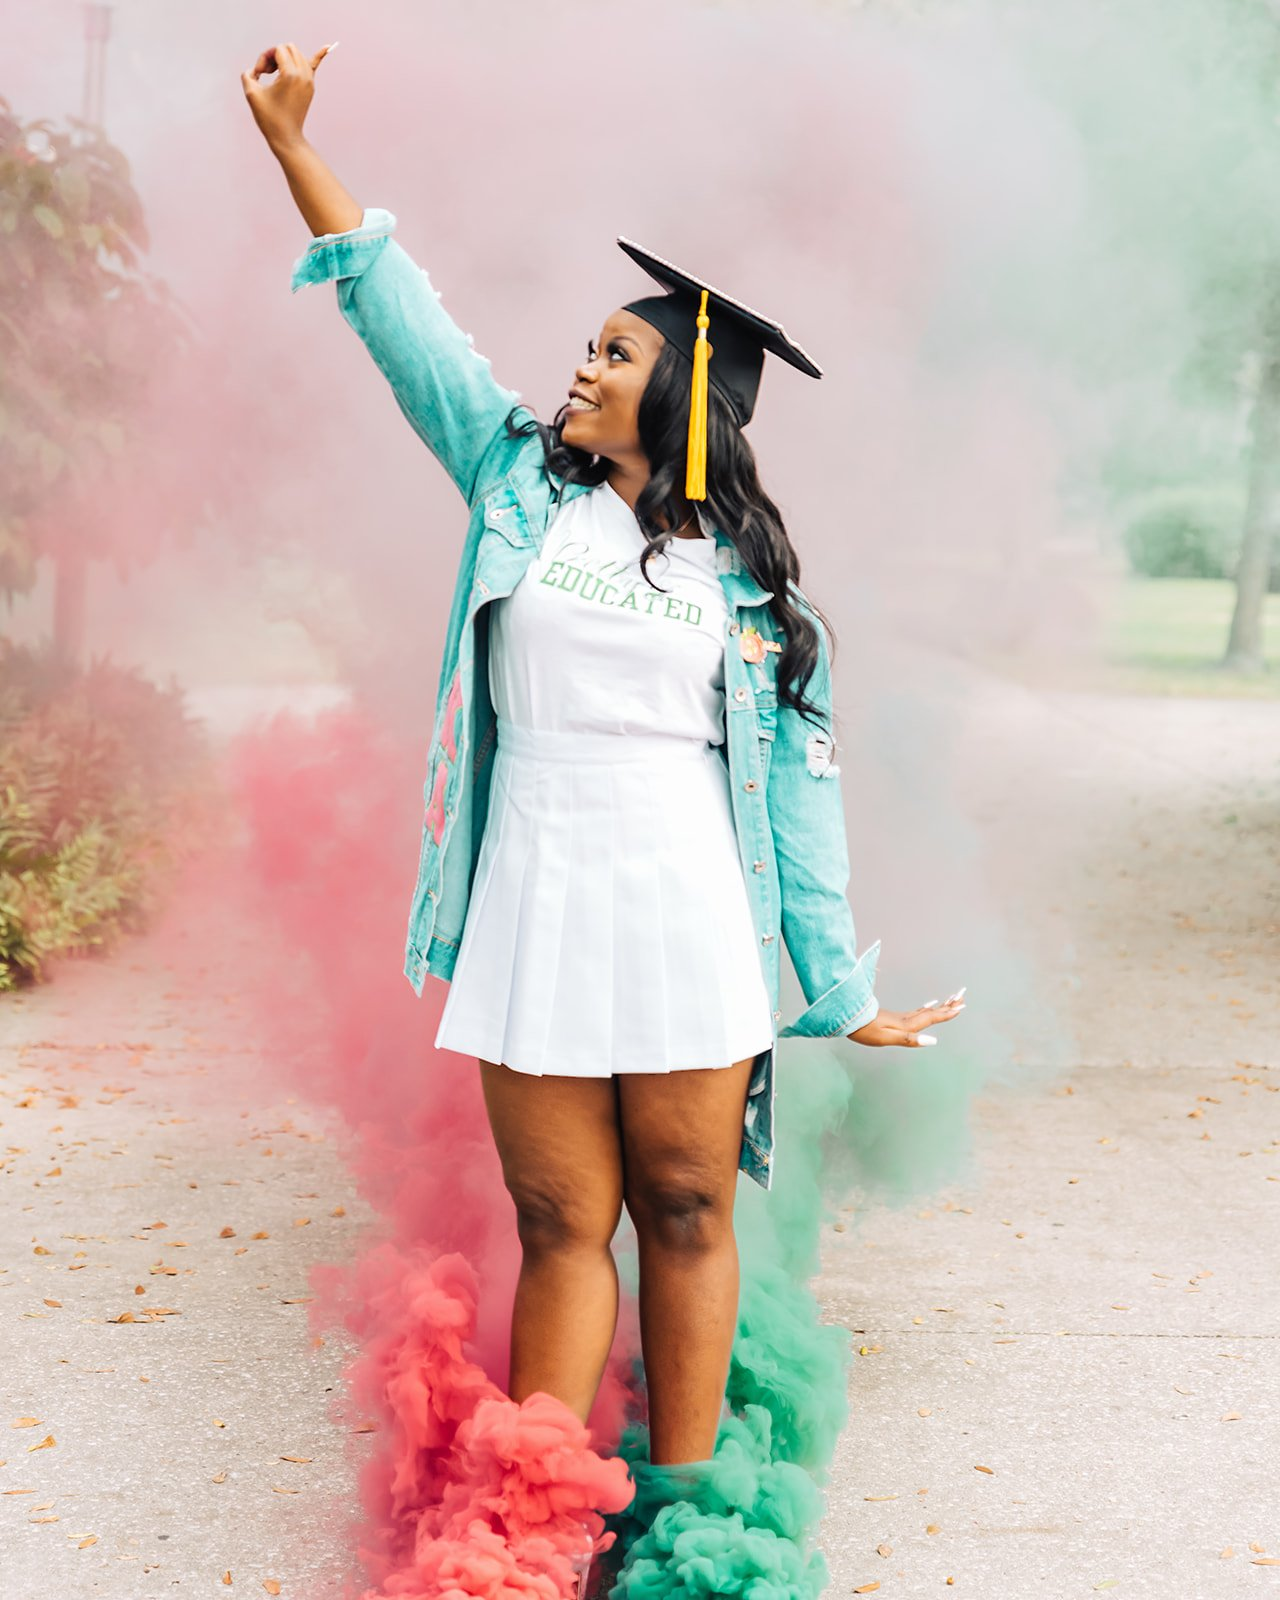 Graduation photoshoot with colored smoke.